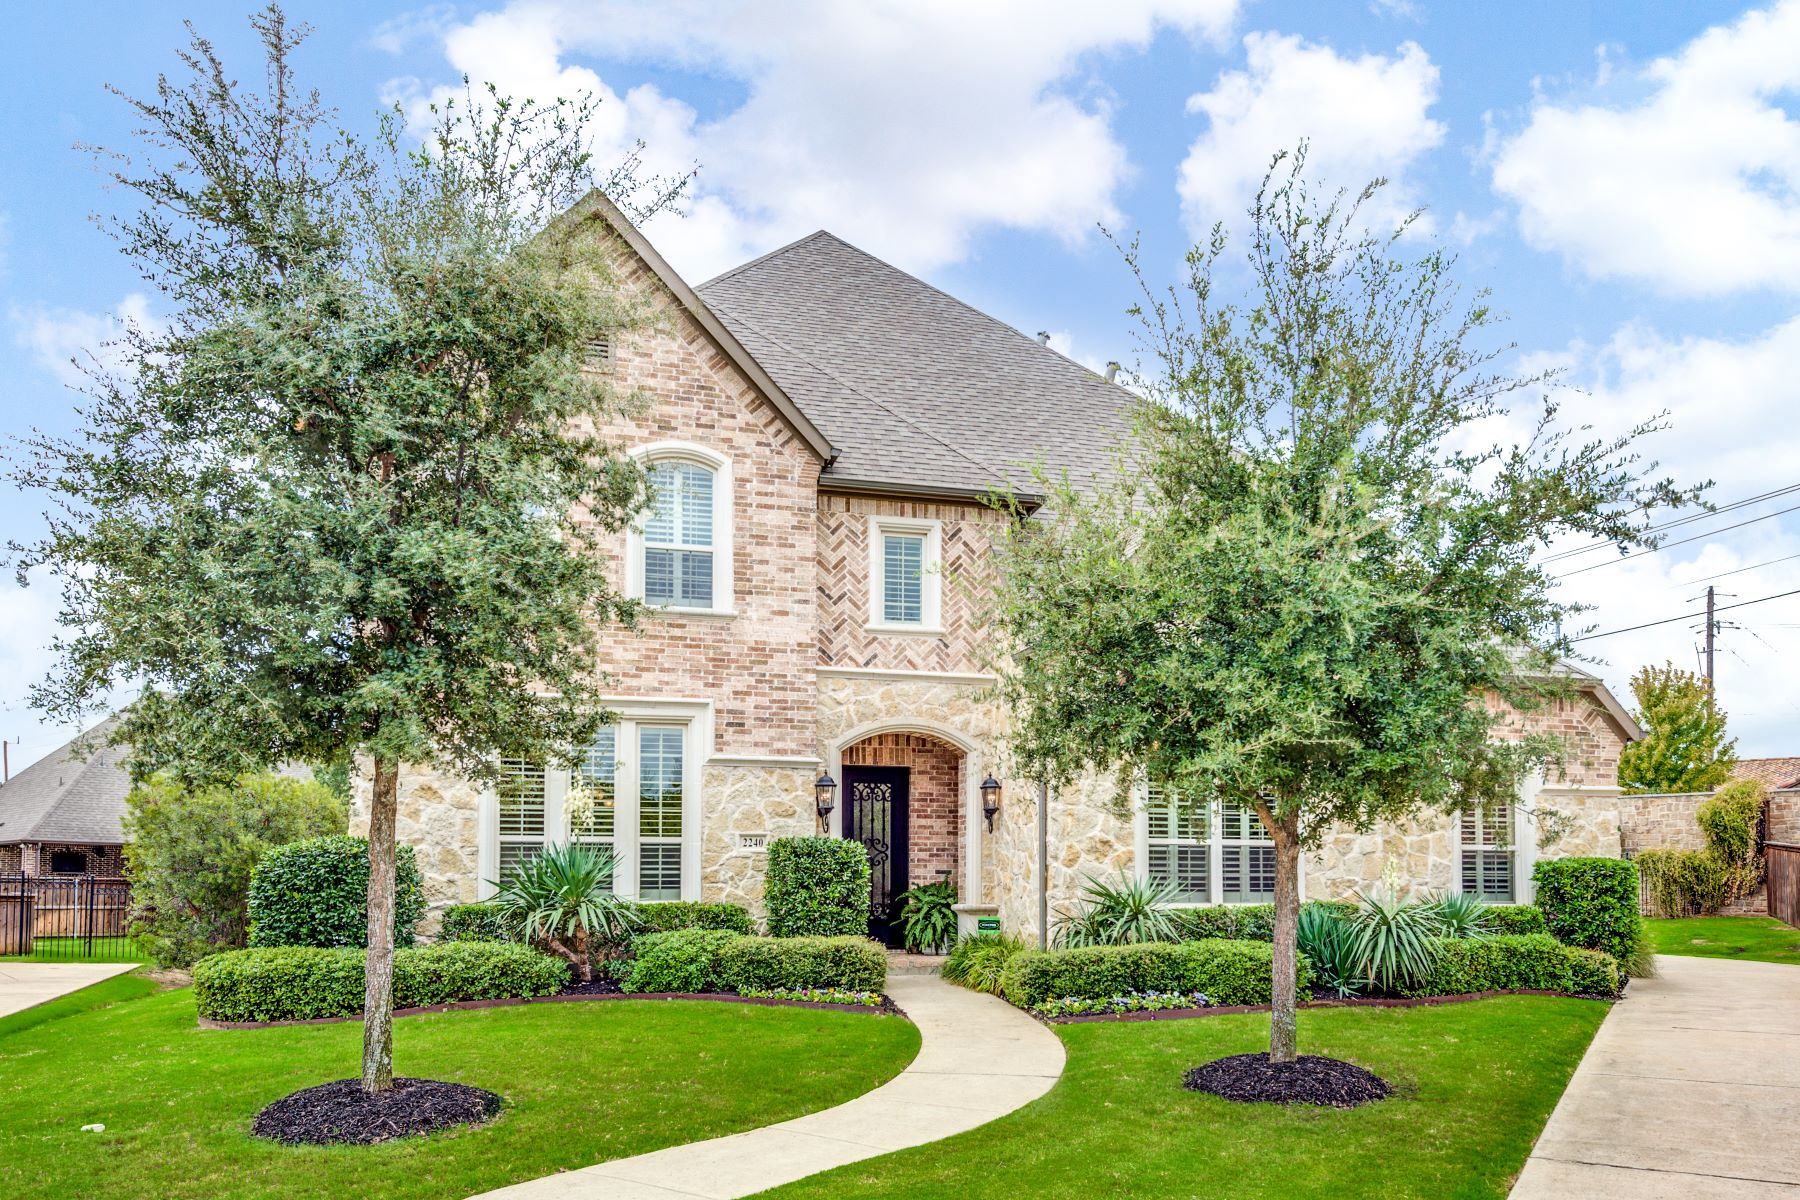 Single Family Homes for Sale at Southlake Carroll ISD 5 Bedroom 2240 Cotswold Valley Court Southlake, Texas 76092 United States